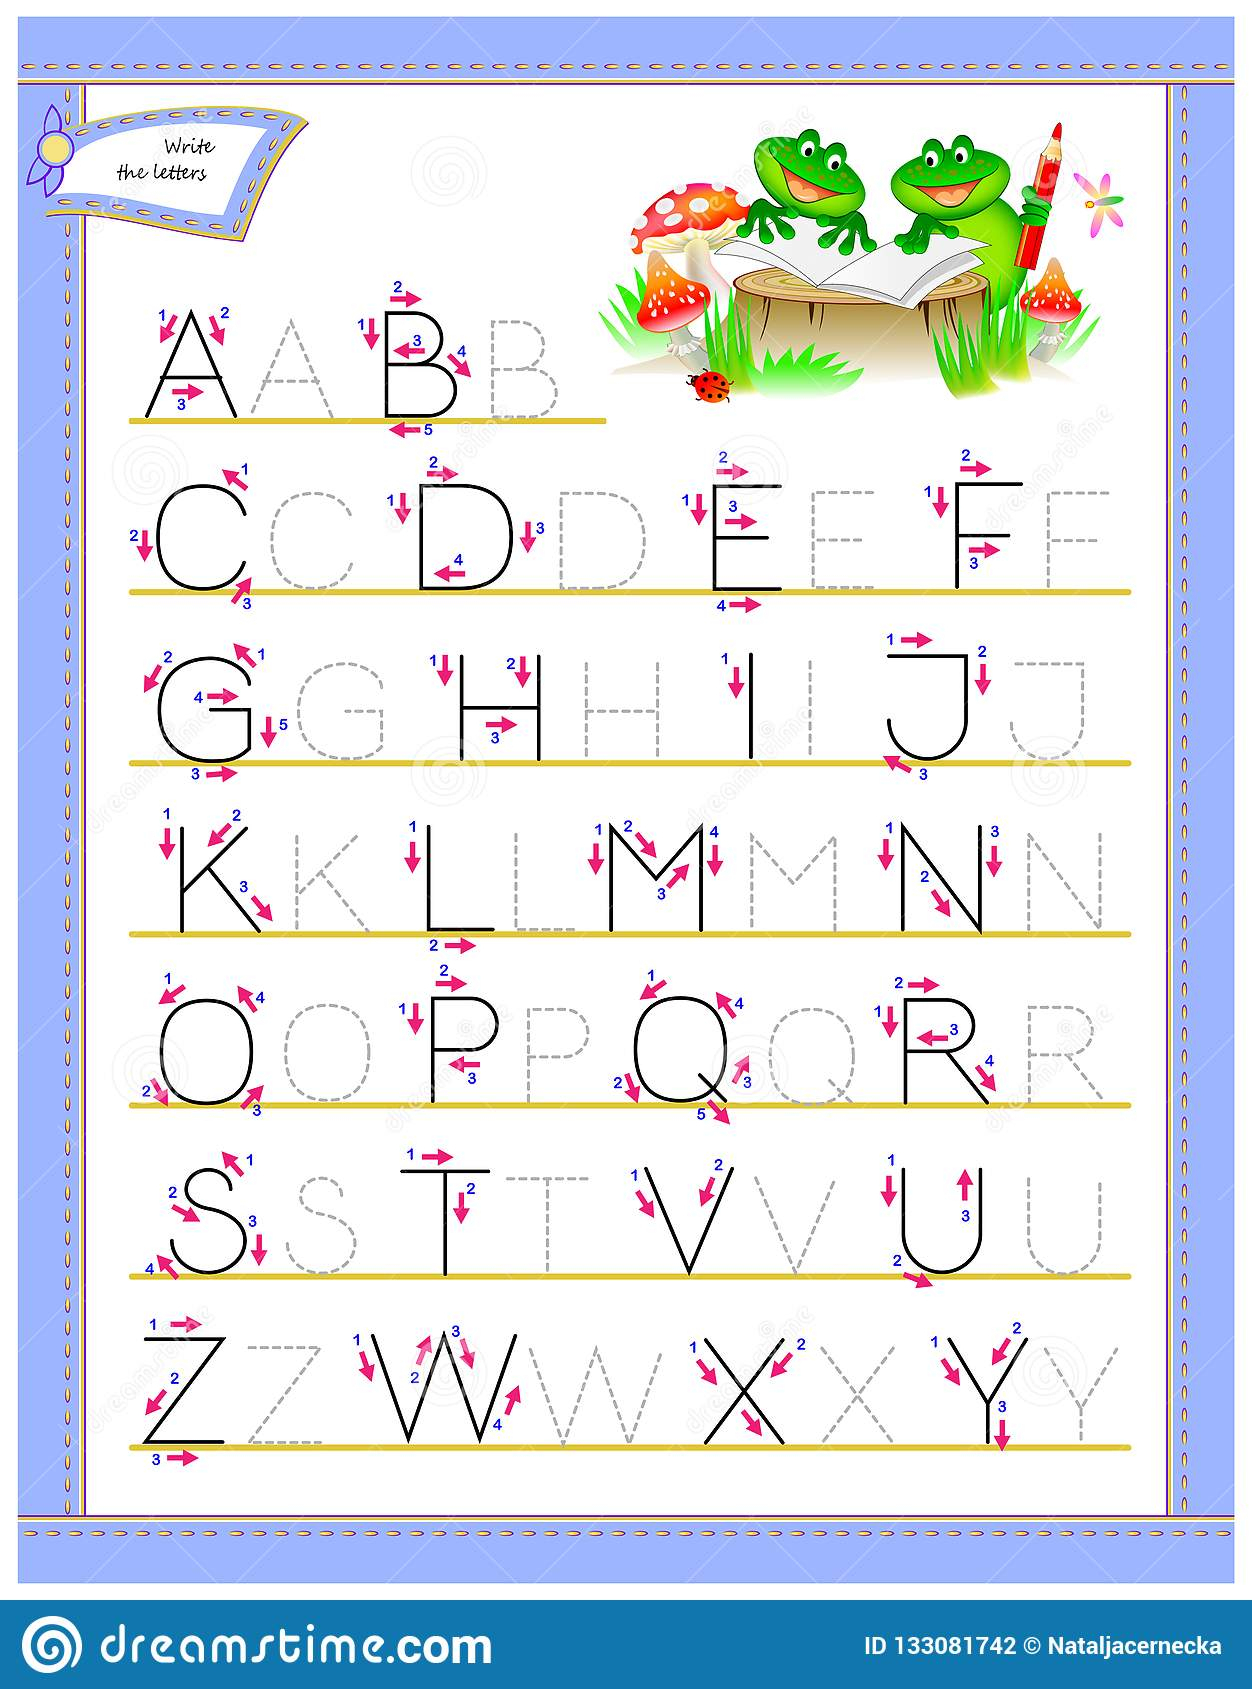 Tracing Abc Letters For Study English Alphabet. Worksheet intended for Alphabet Worksheets 4 Lines